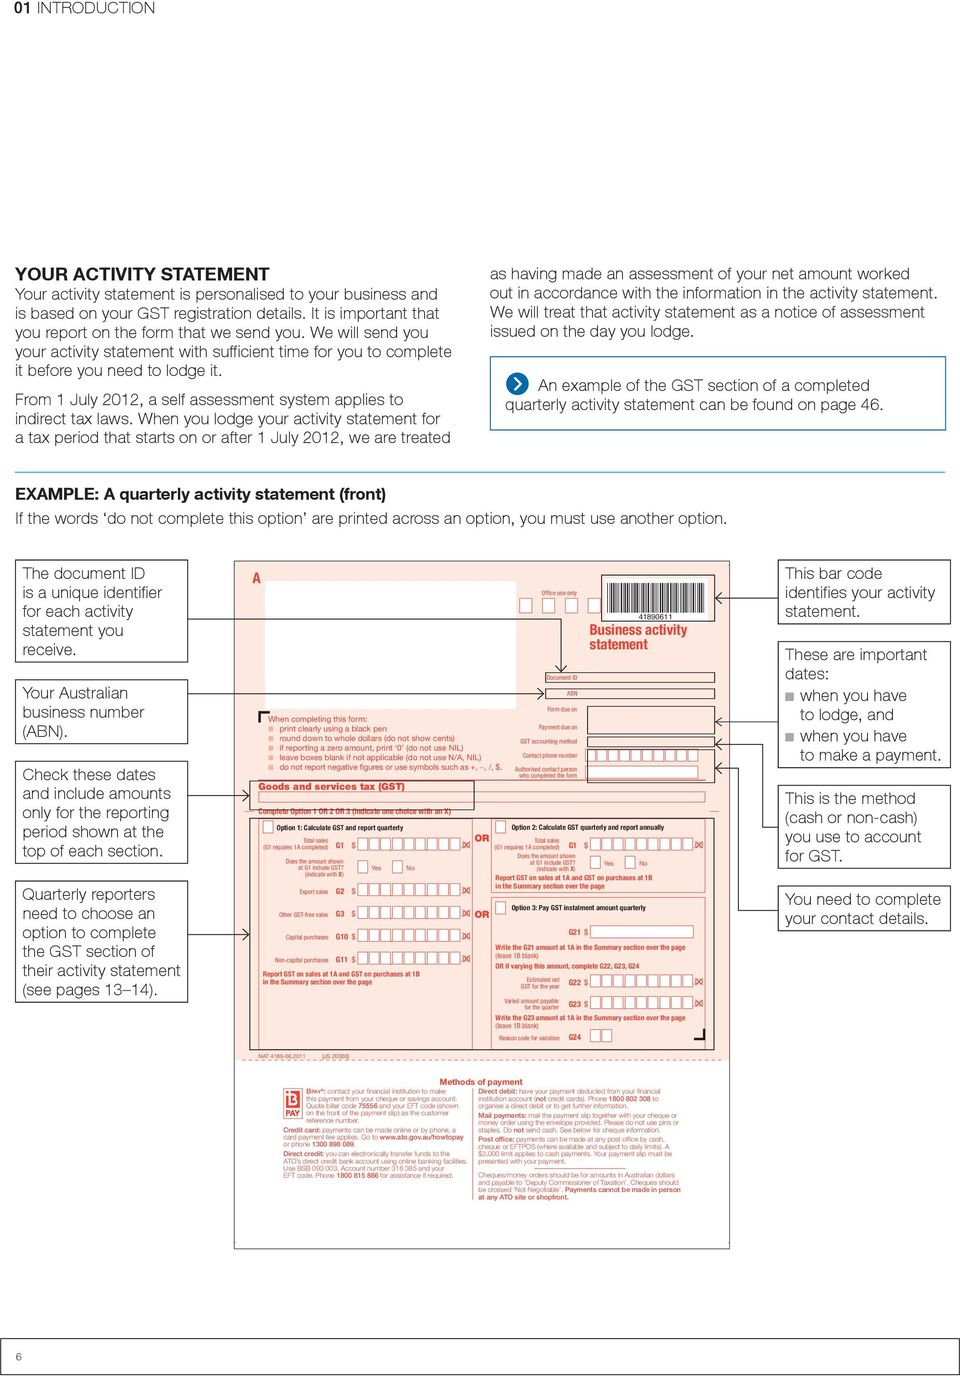 From 1 July 2012, a self assessment system applies to indirect tax laws.